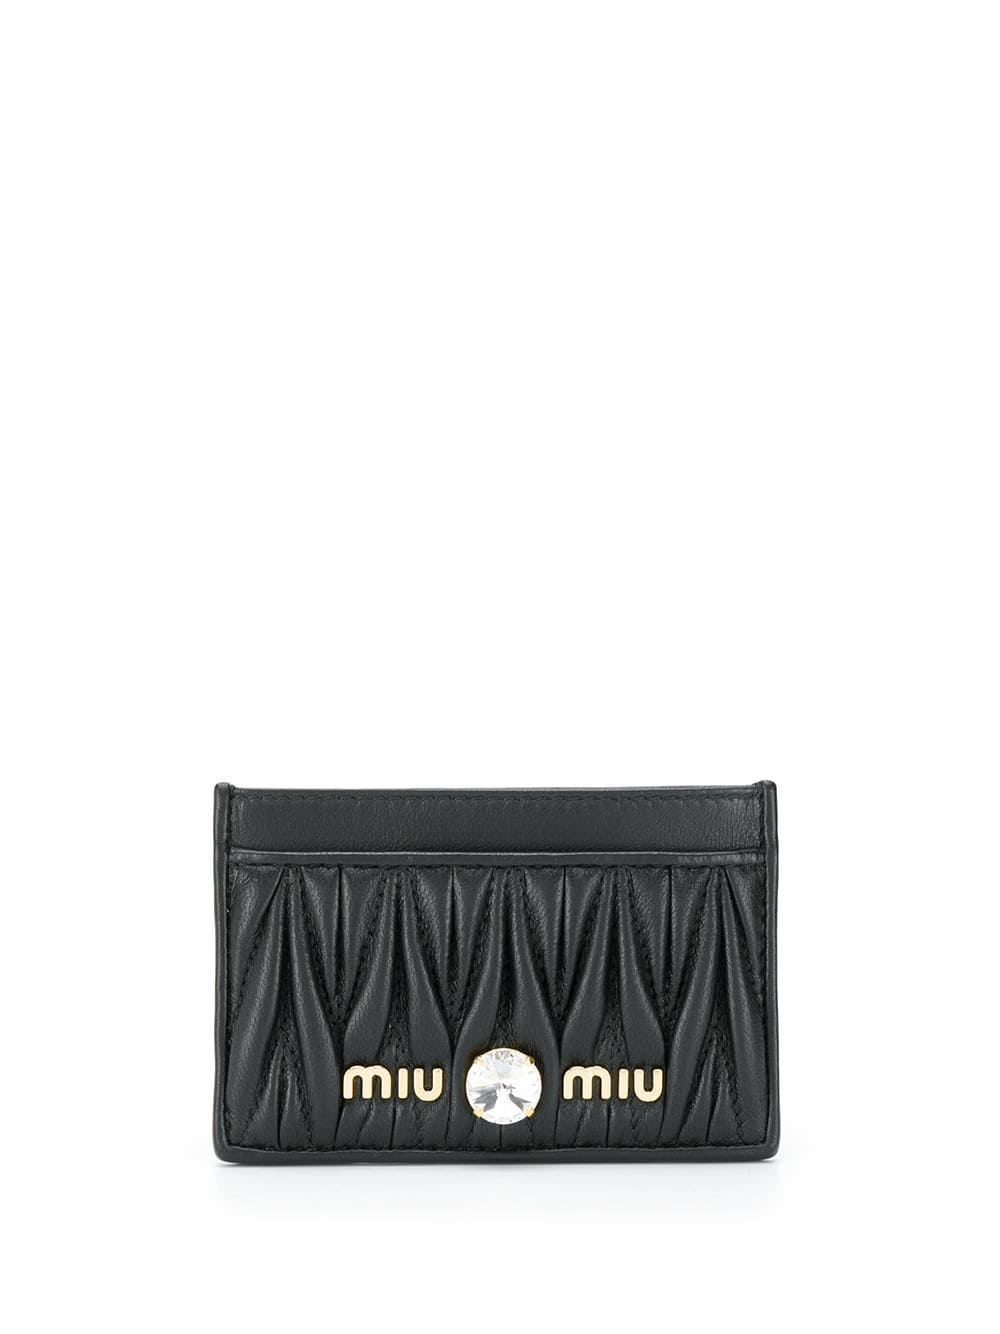 ad6e924a703 Miu Miu Matelassé Leather Card Holder - Black